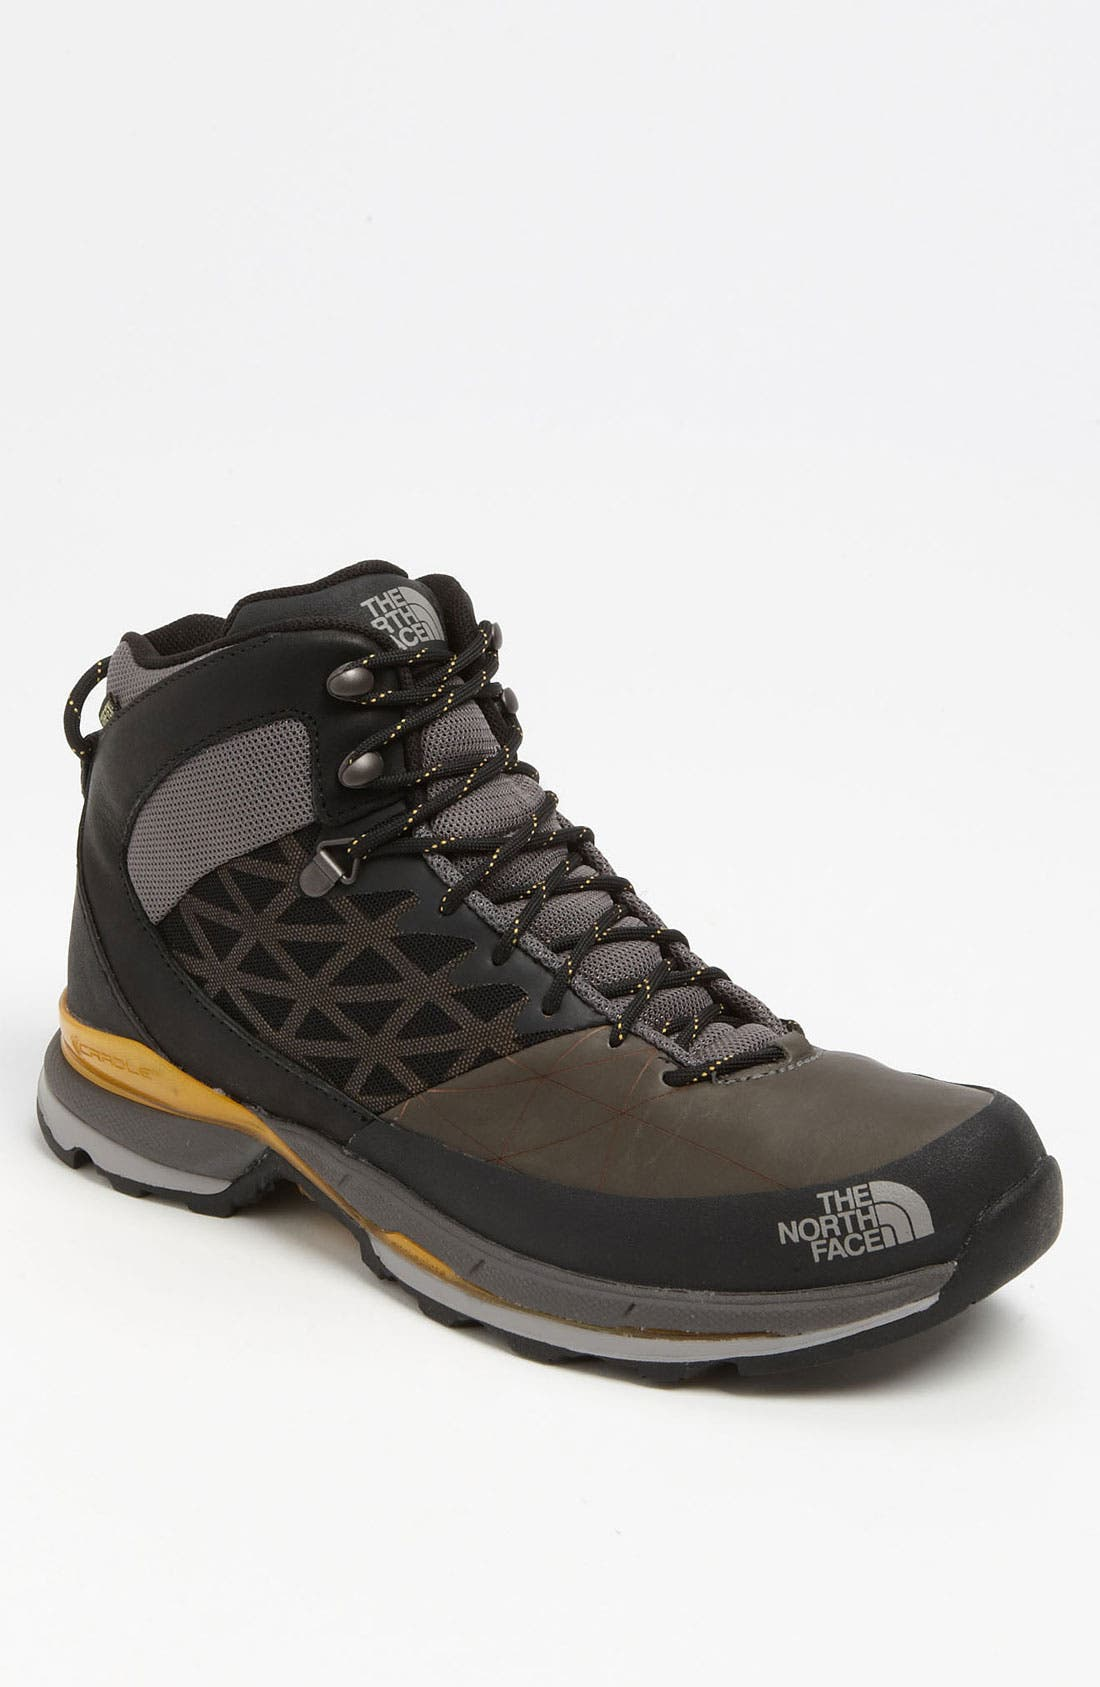 Alternate Image 1 Selected - The North Face 'Havoc Mid' Hiking Boot